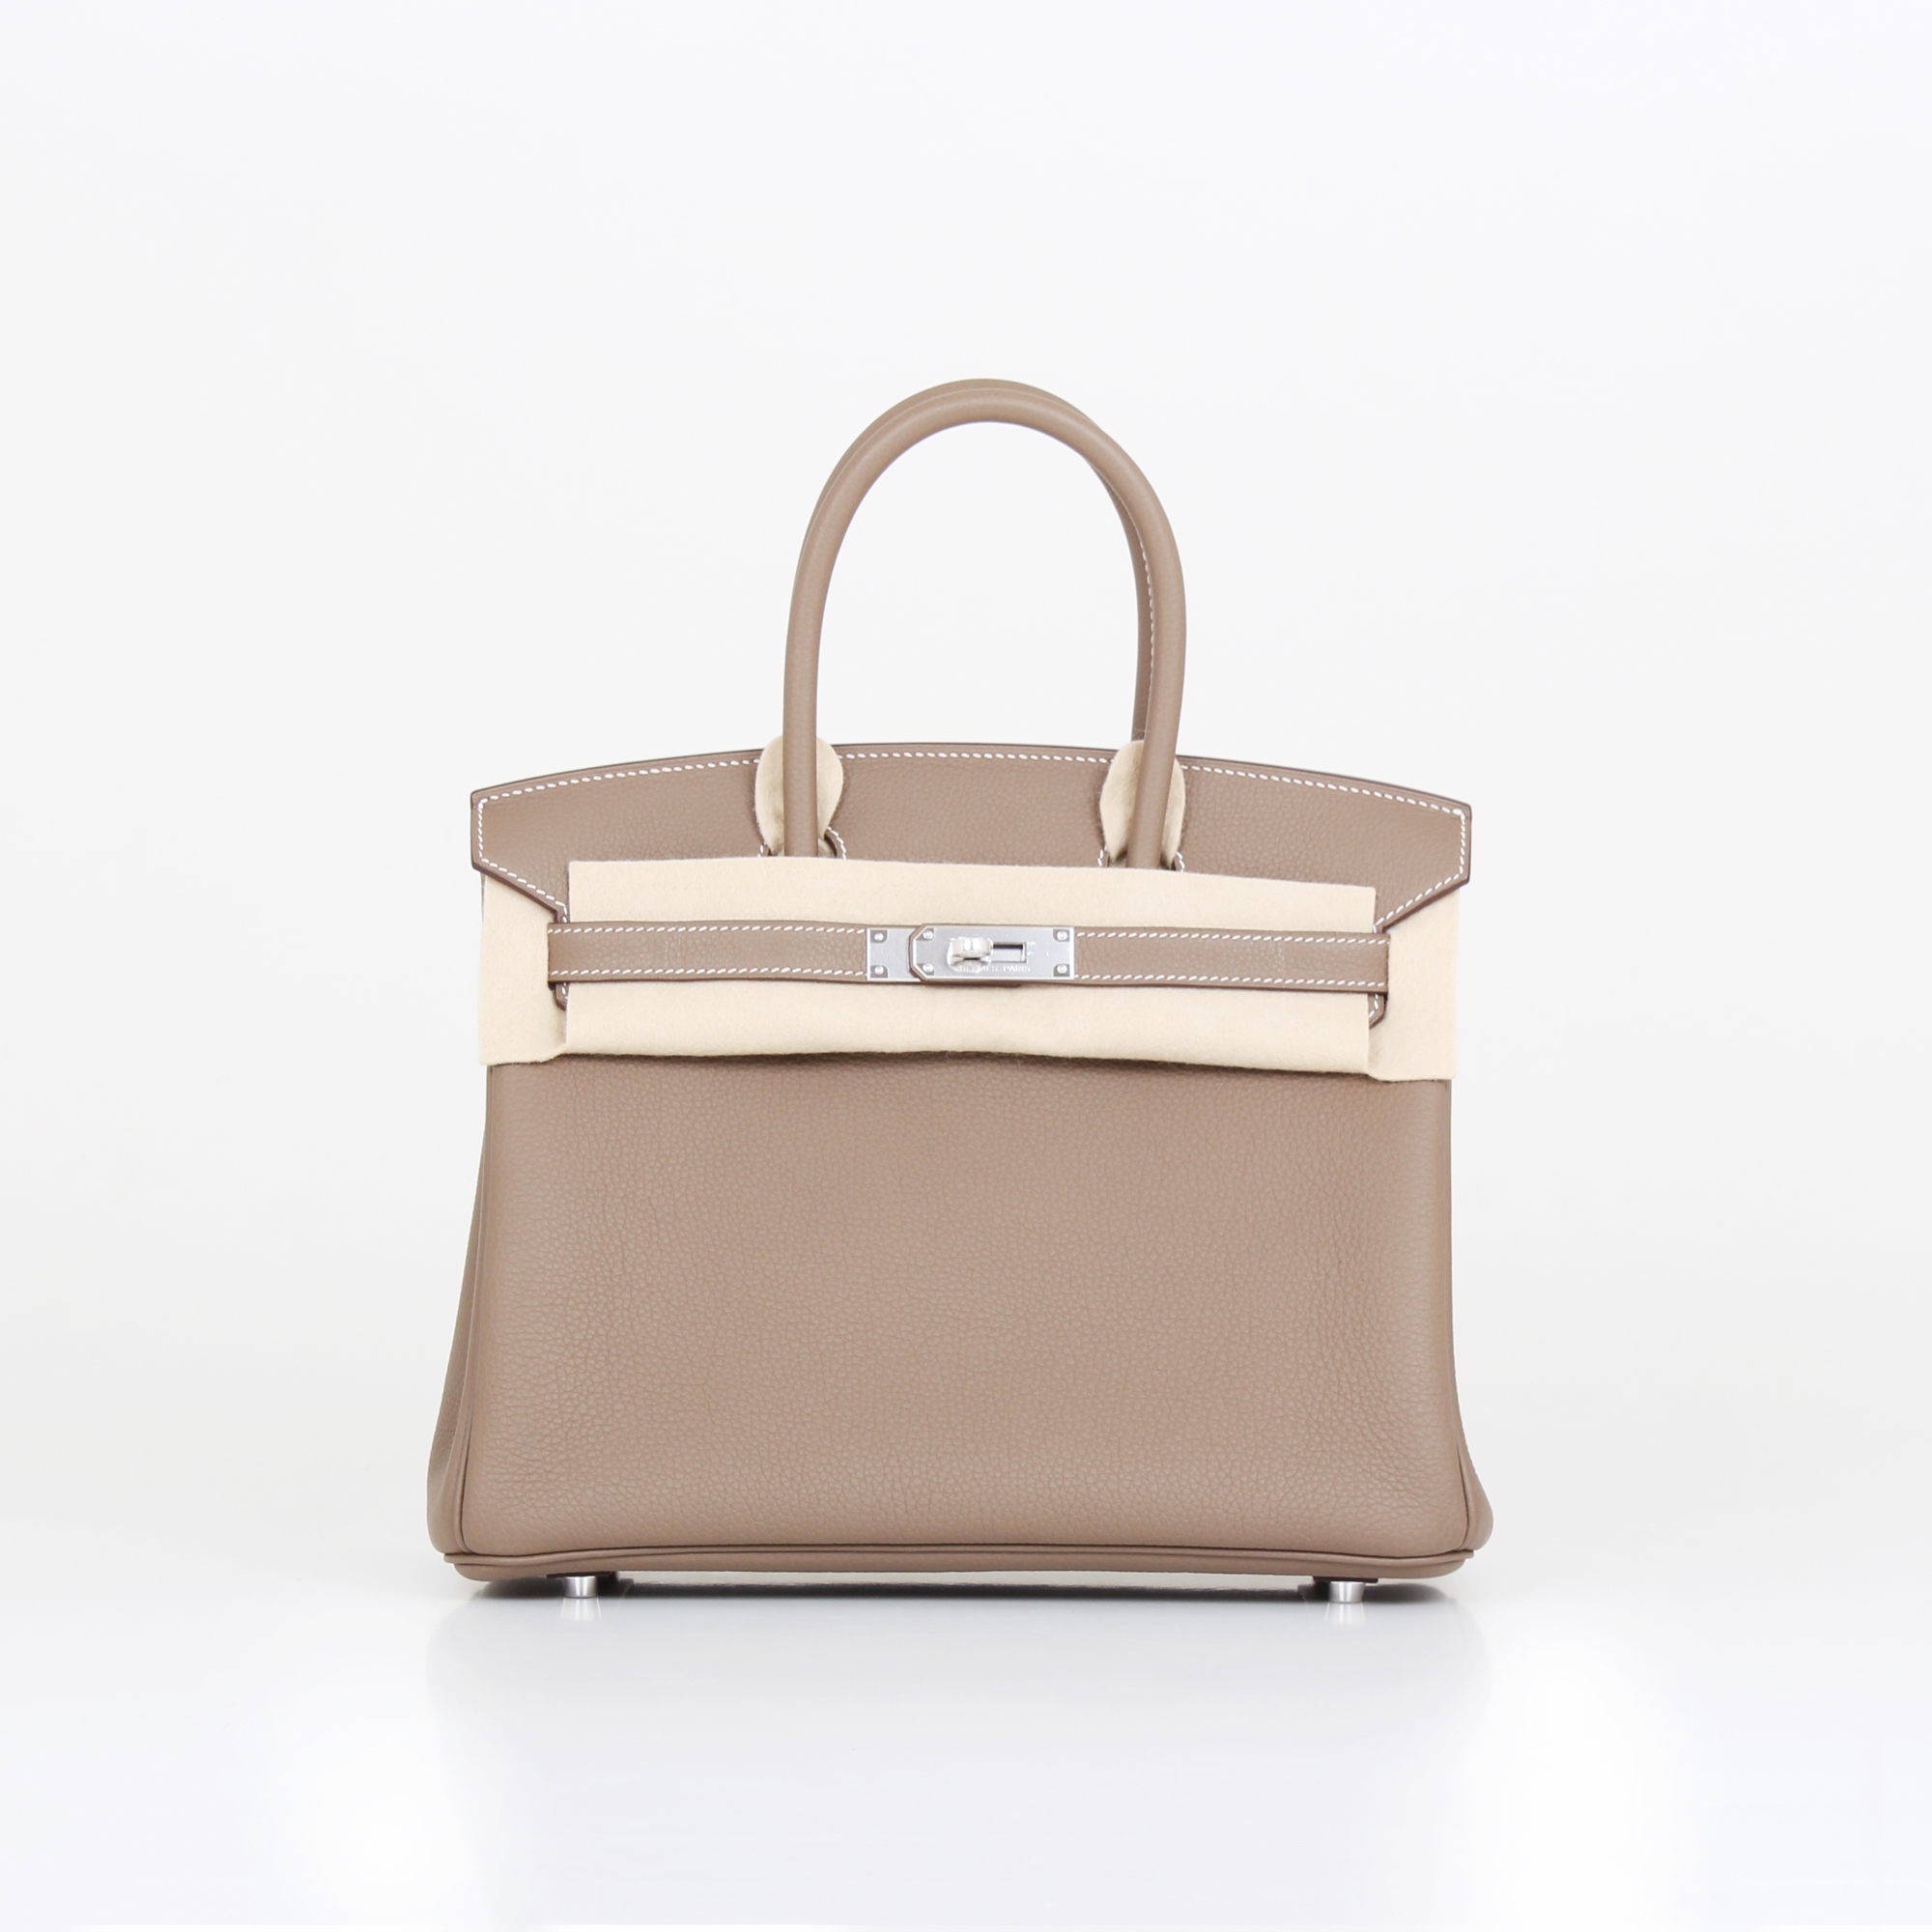 Front image of hermes birkin bag taupe togo with protective cloth